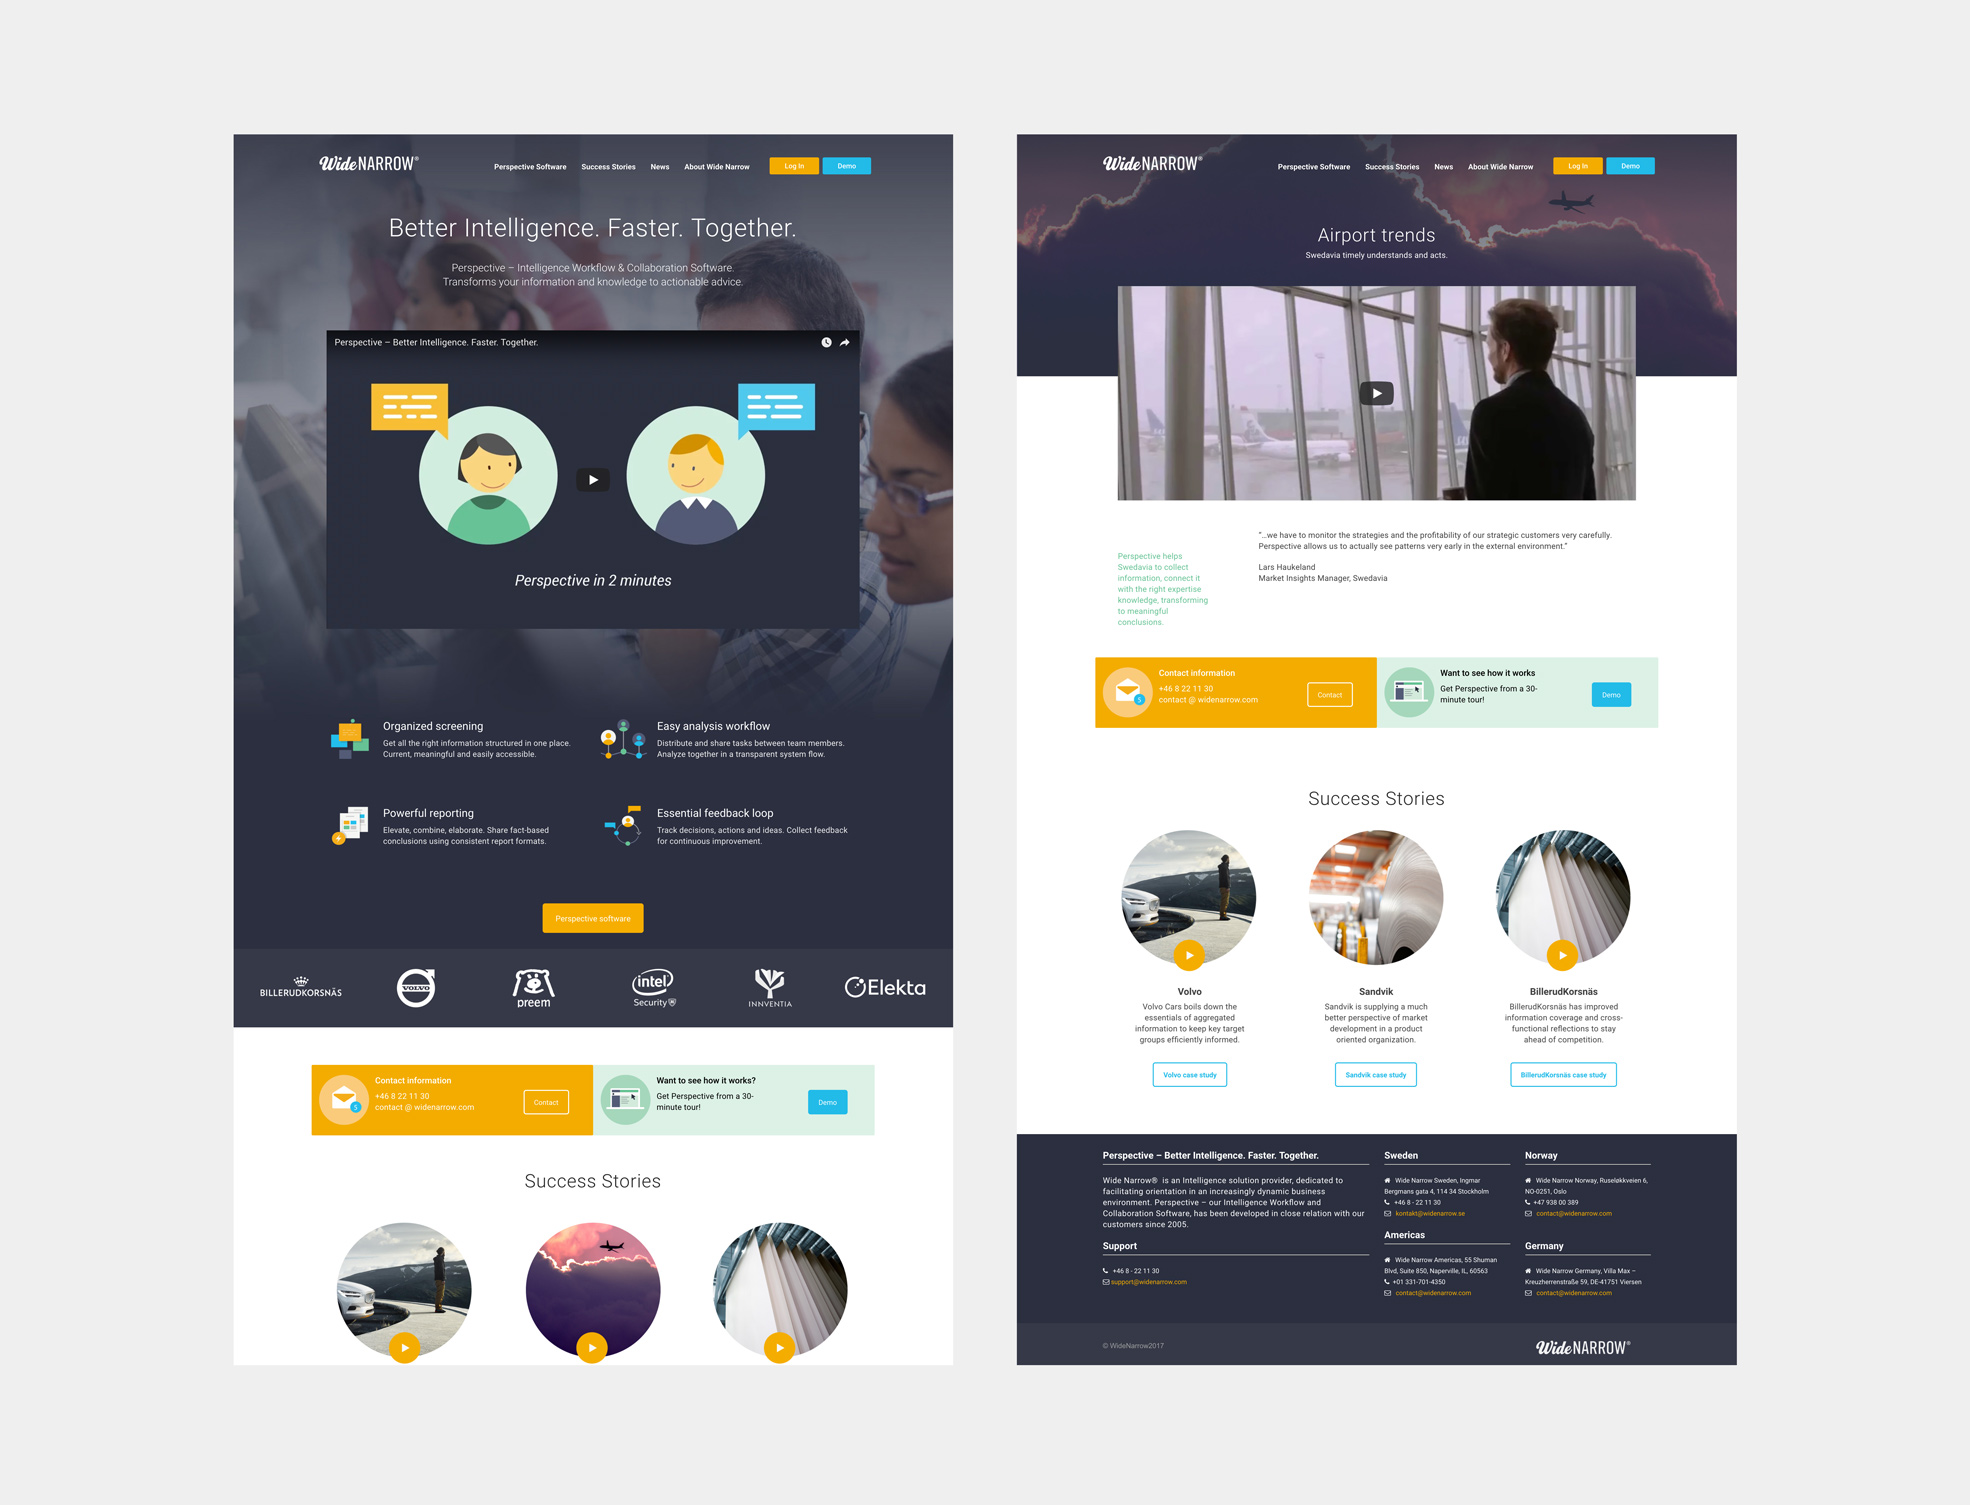 Digital design for Wide Narrow website and software user interface. Material from the process. Full screens showing Wide Narrow start page along with case presentation layout.